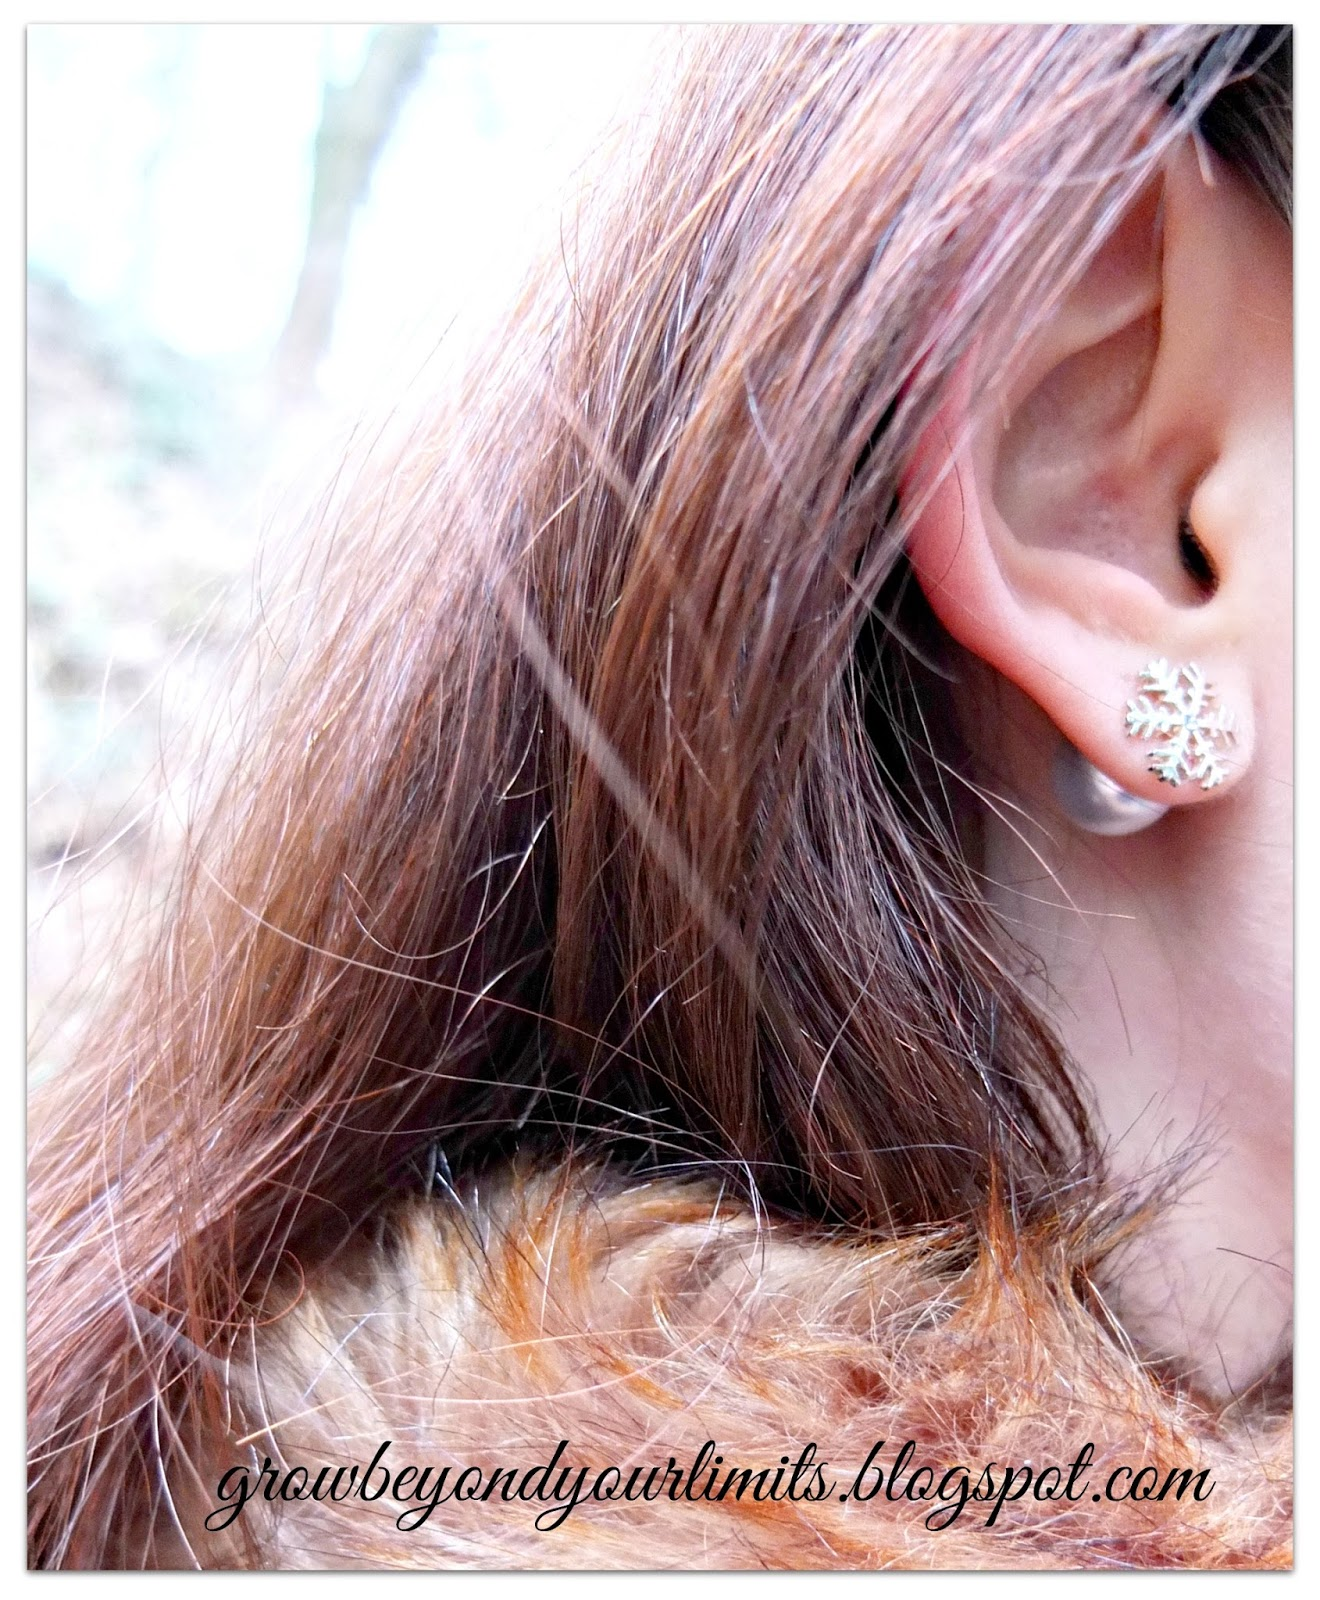 How to grow healthy  long and beautiful hair  Holistic and Natural     Pearl and Snowflake Earrings  Have been a favourite this whole winter  I  think snowflakes have such delicacy to them   very lovely and simple